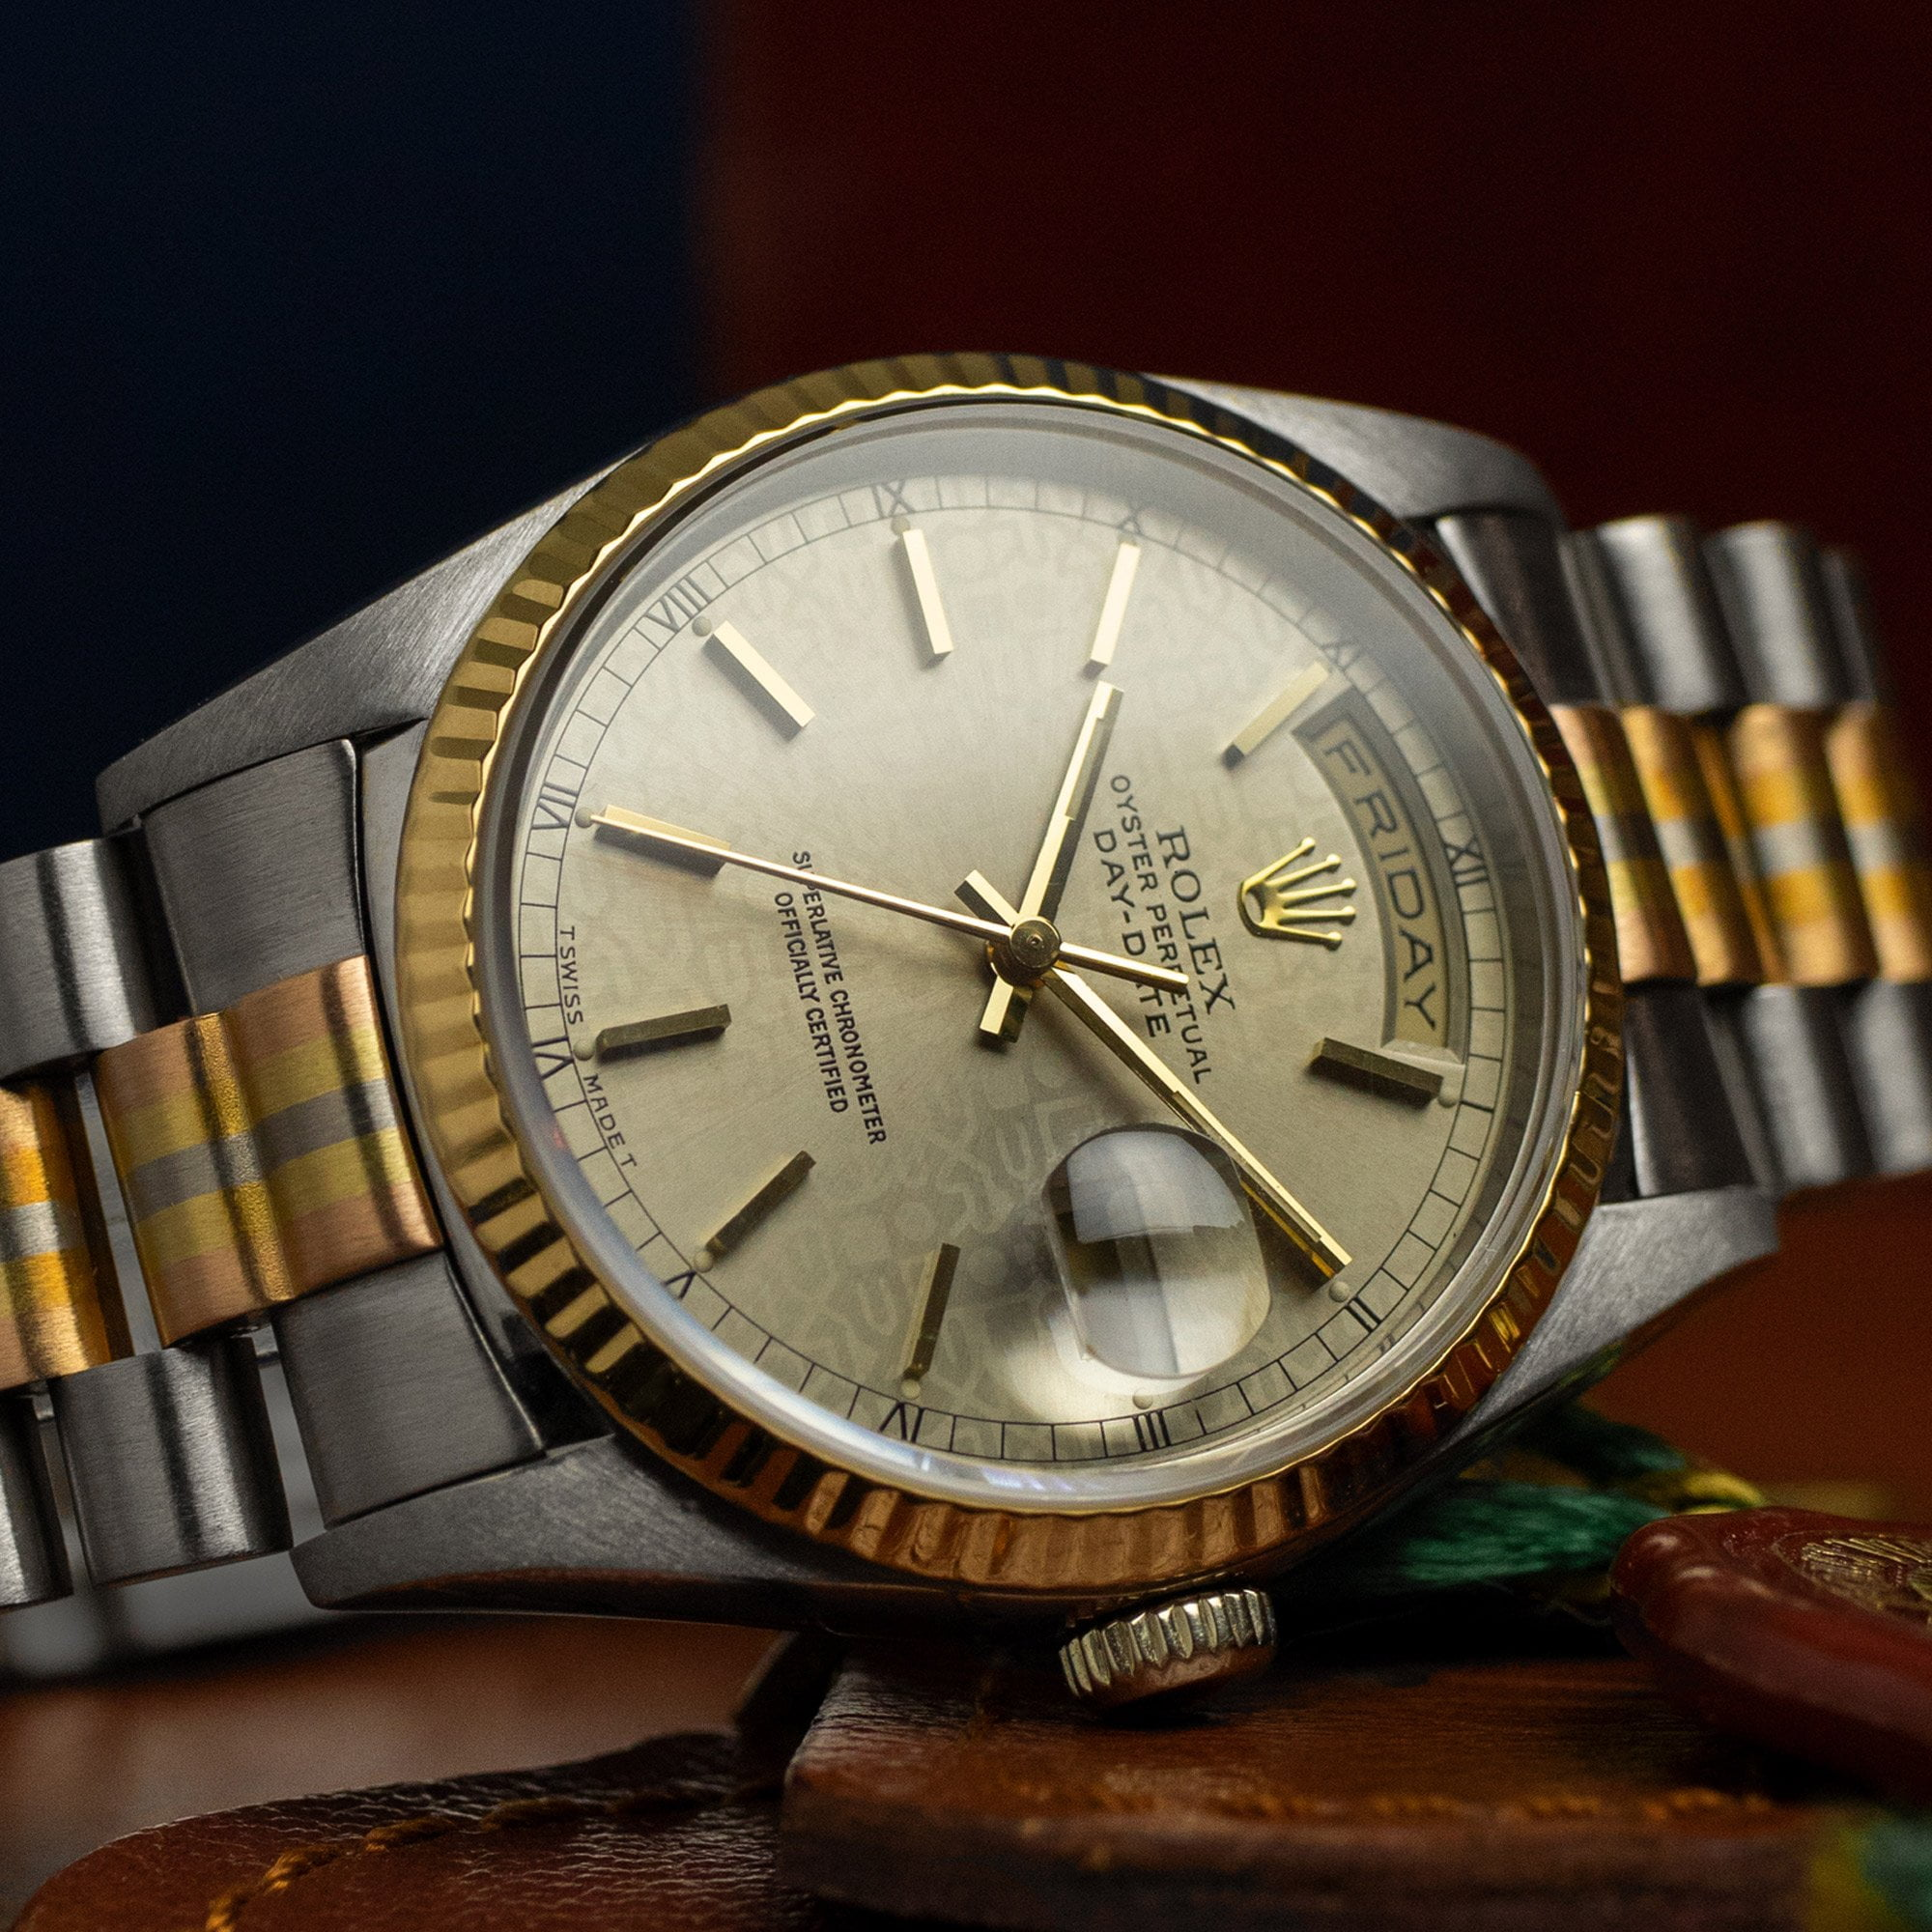 Rolex Day-Date 18239 'Tridor' Full Set - AMSTERDAM VINTAGE WATCHES